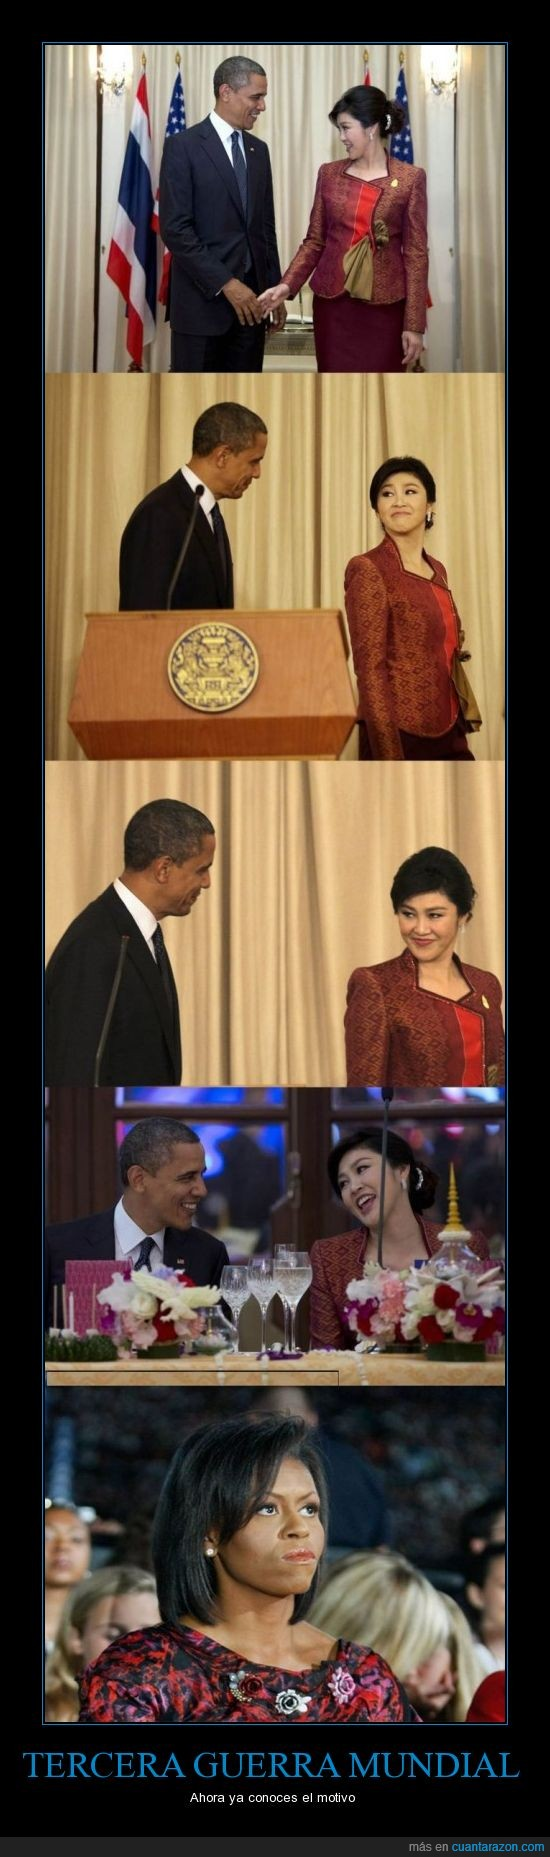 Barack Obama,Chicas,China,Guerra Mundial,humor,Michlle Obama,Obama